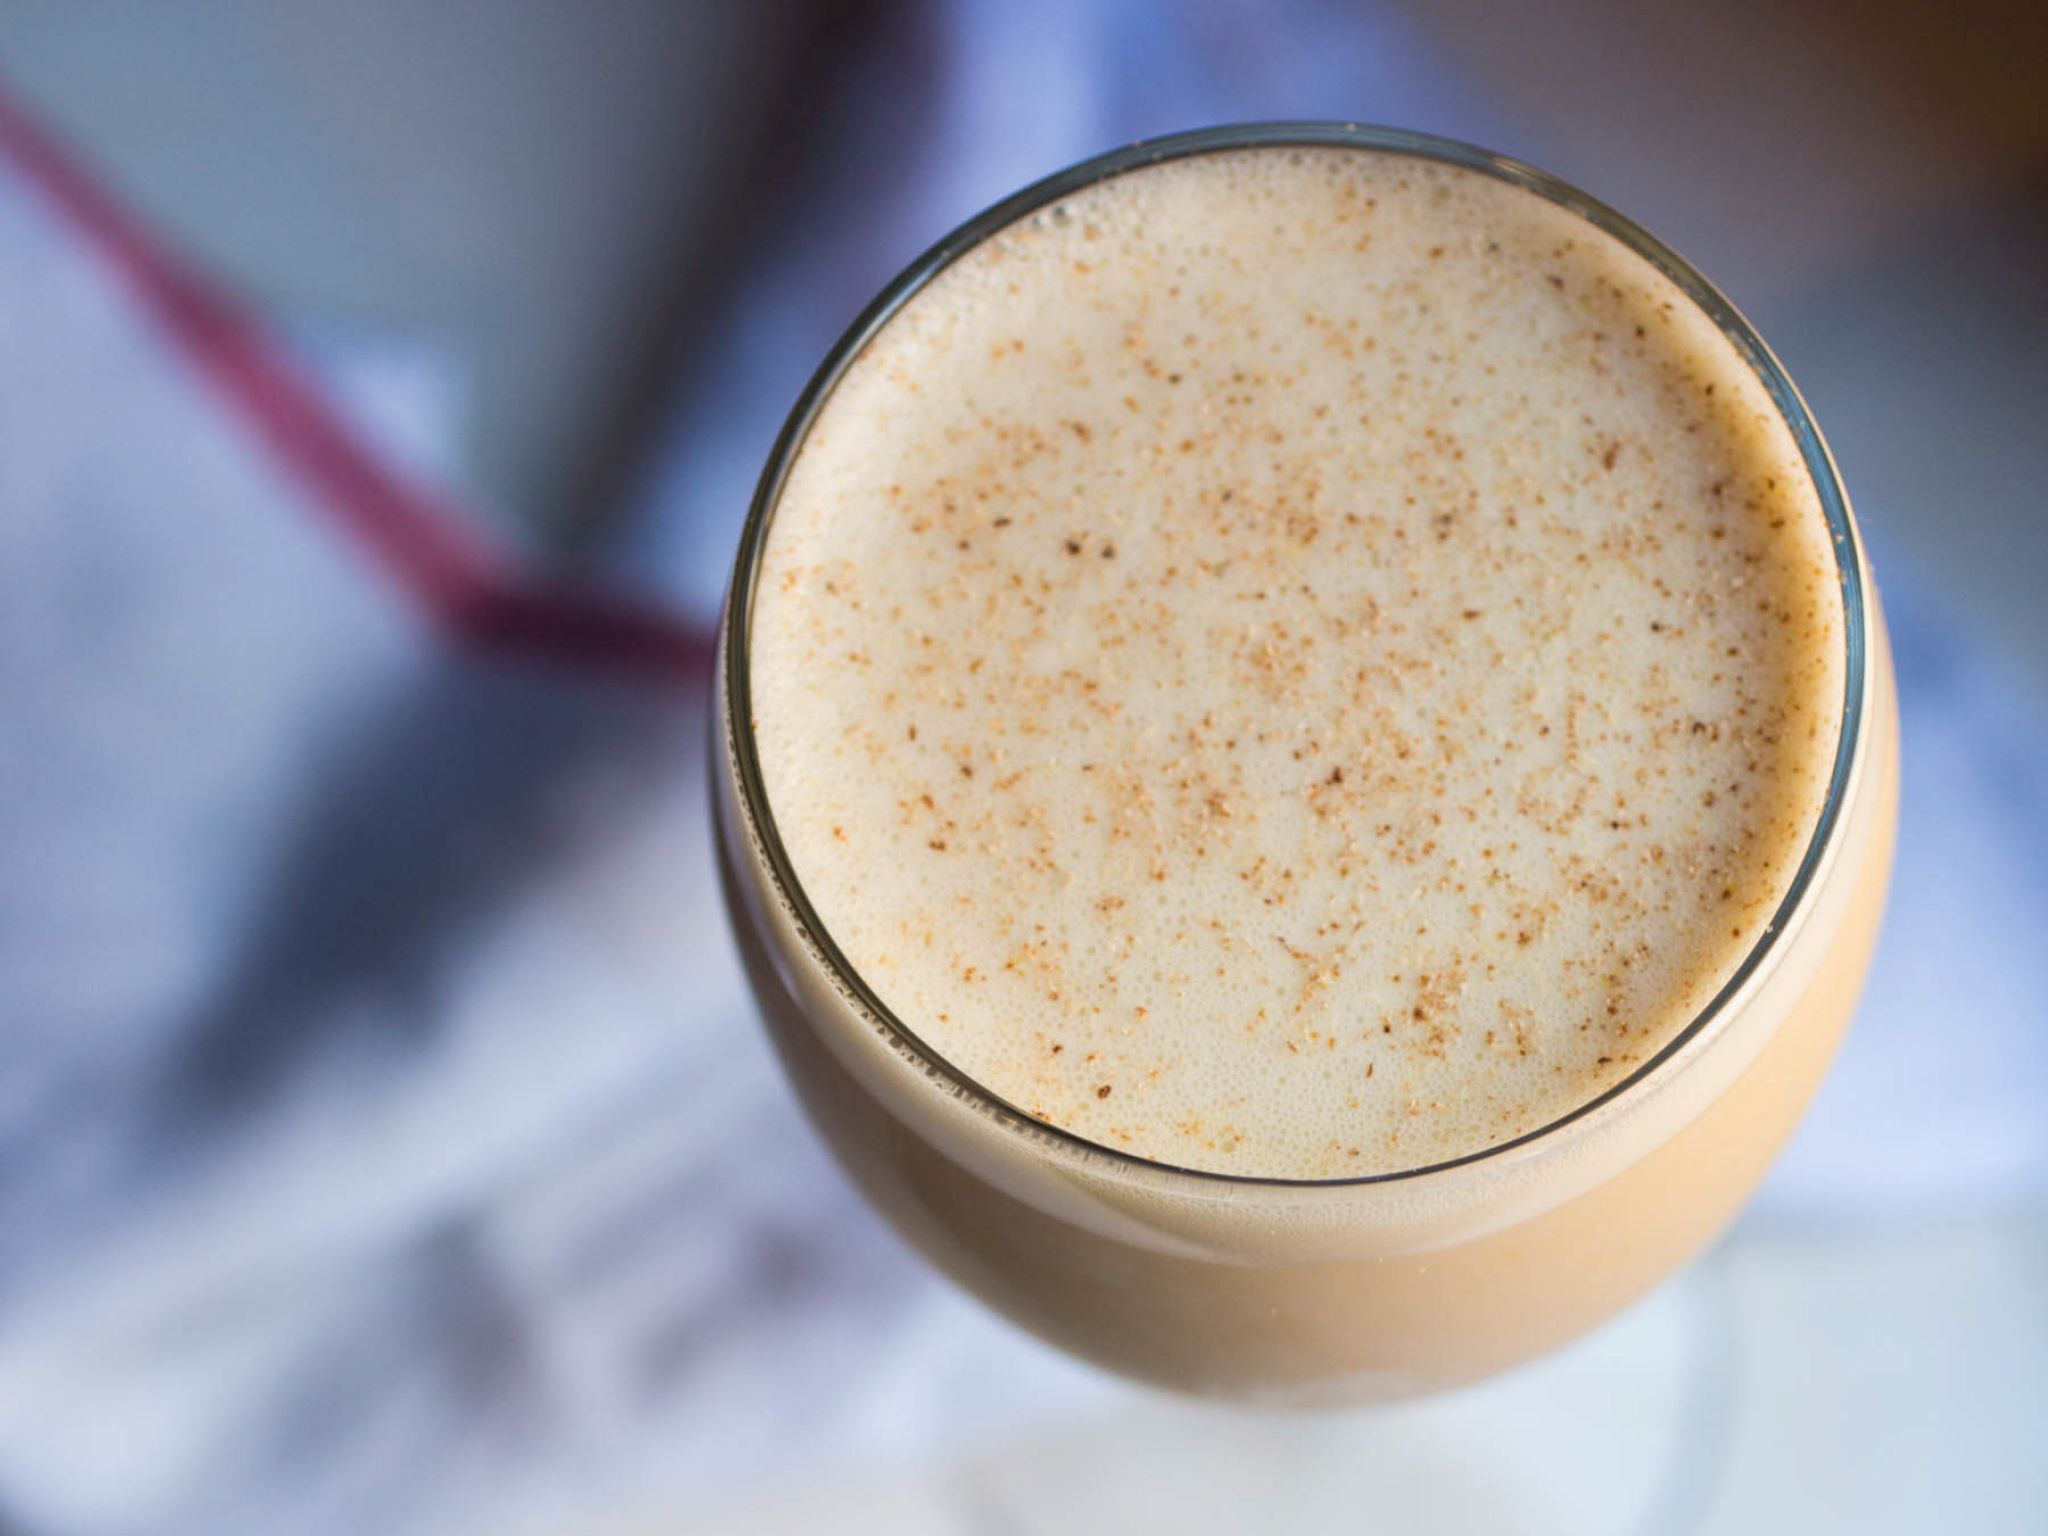 Baltimore eggnog recipe recipes foods and drink forumfinder Choice Image